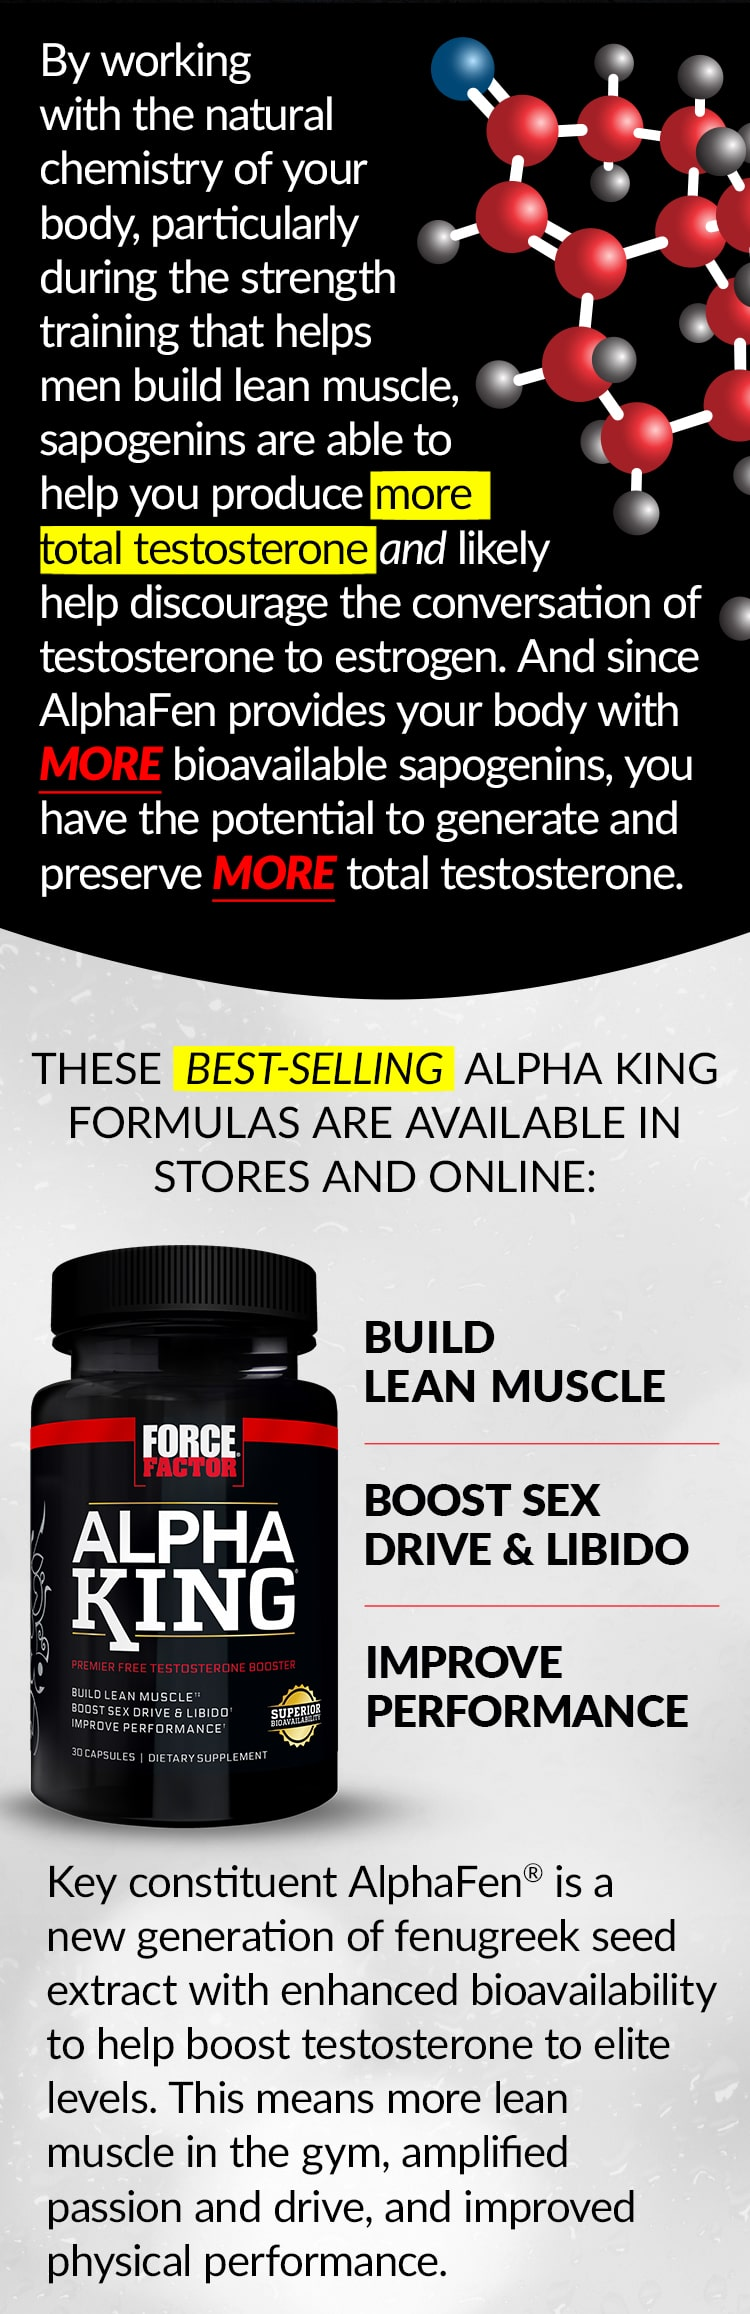 By working with the natural chemistry of your body, particularly during the strength training that helps men build lean muscle, sapogenins are able to help you produce more total testosterone and likely help discourage the conversation of testosterone to estrogen. And since AlphaFen provides your body with MORE bioavailable sapogenins, you have the potential to generate and preserve MORE total testosterone. THESE BEST-SELLING ALPHA KING FORMULAS ARE AVAILABLE IN STORES AND ONLINE: Alpha King® - BUILD LEAN MUSCLE, BOOST SEX DRIVE & LIBIDO, IMPROVE PERFORMANCE. Key constituent AlphaFen® is a new generation of fenugreek seed extract with enhanced bioavailability to help boost testosterone to elite levels. This means more lean muscle in the gym, amplified passion and drive, and improved physical performance.